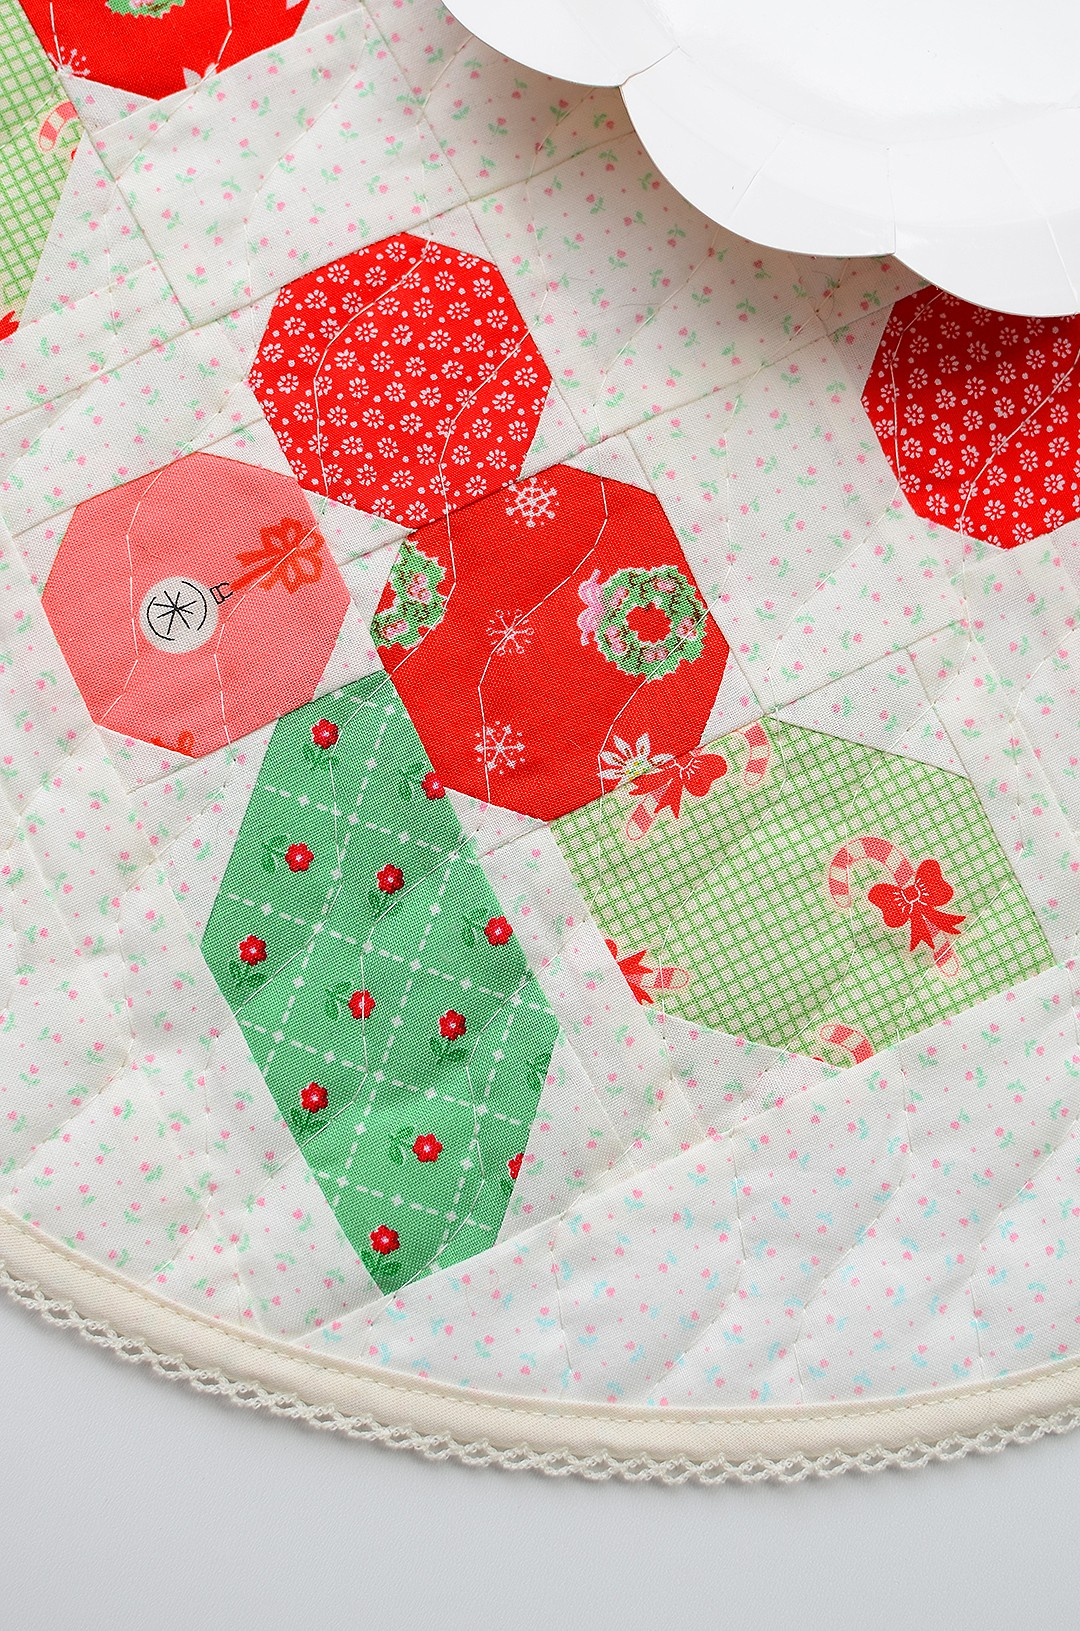 Holly Berry table topper - a free tutorial